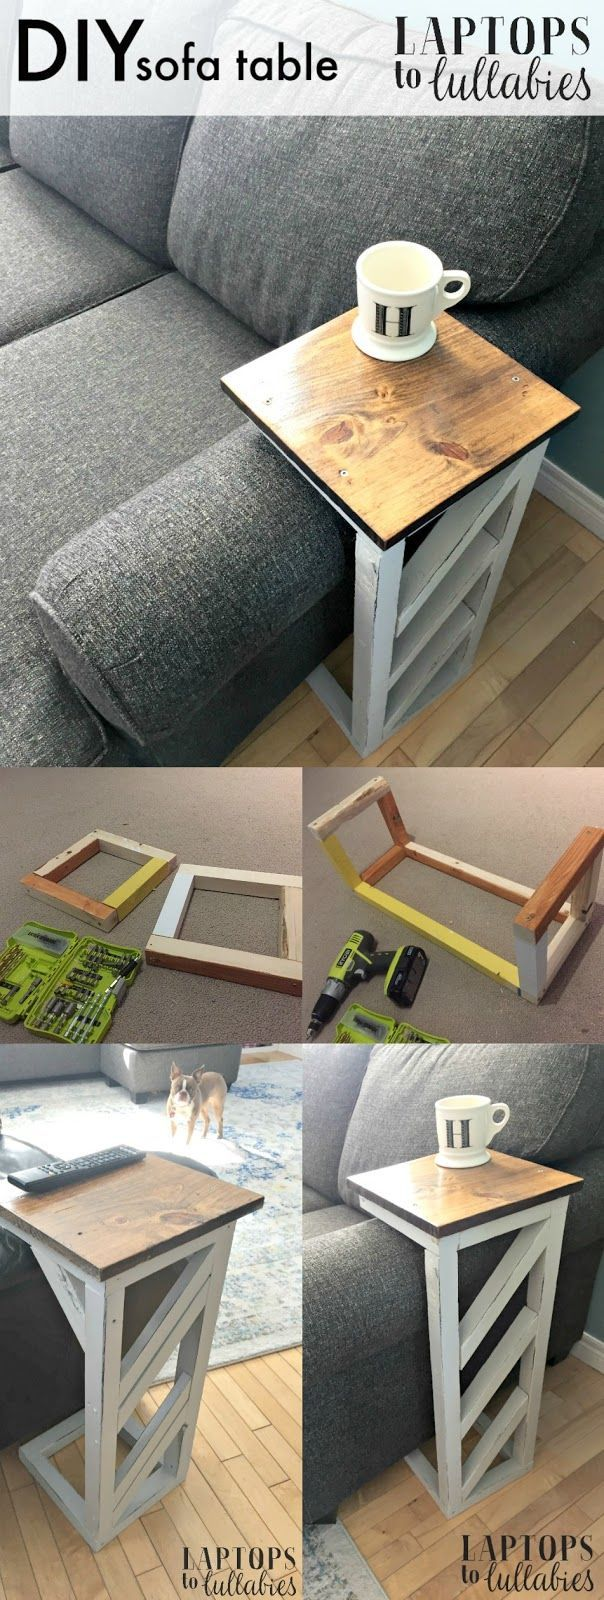 Laptops to Lullabies Easy DIY sofa tables